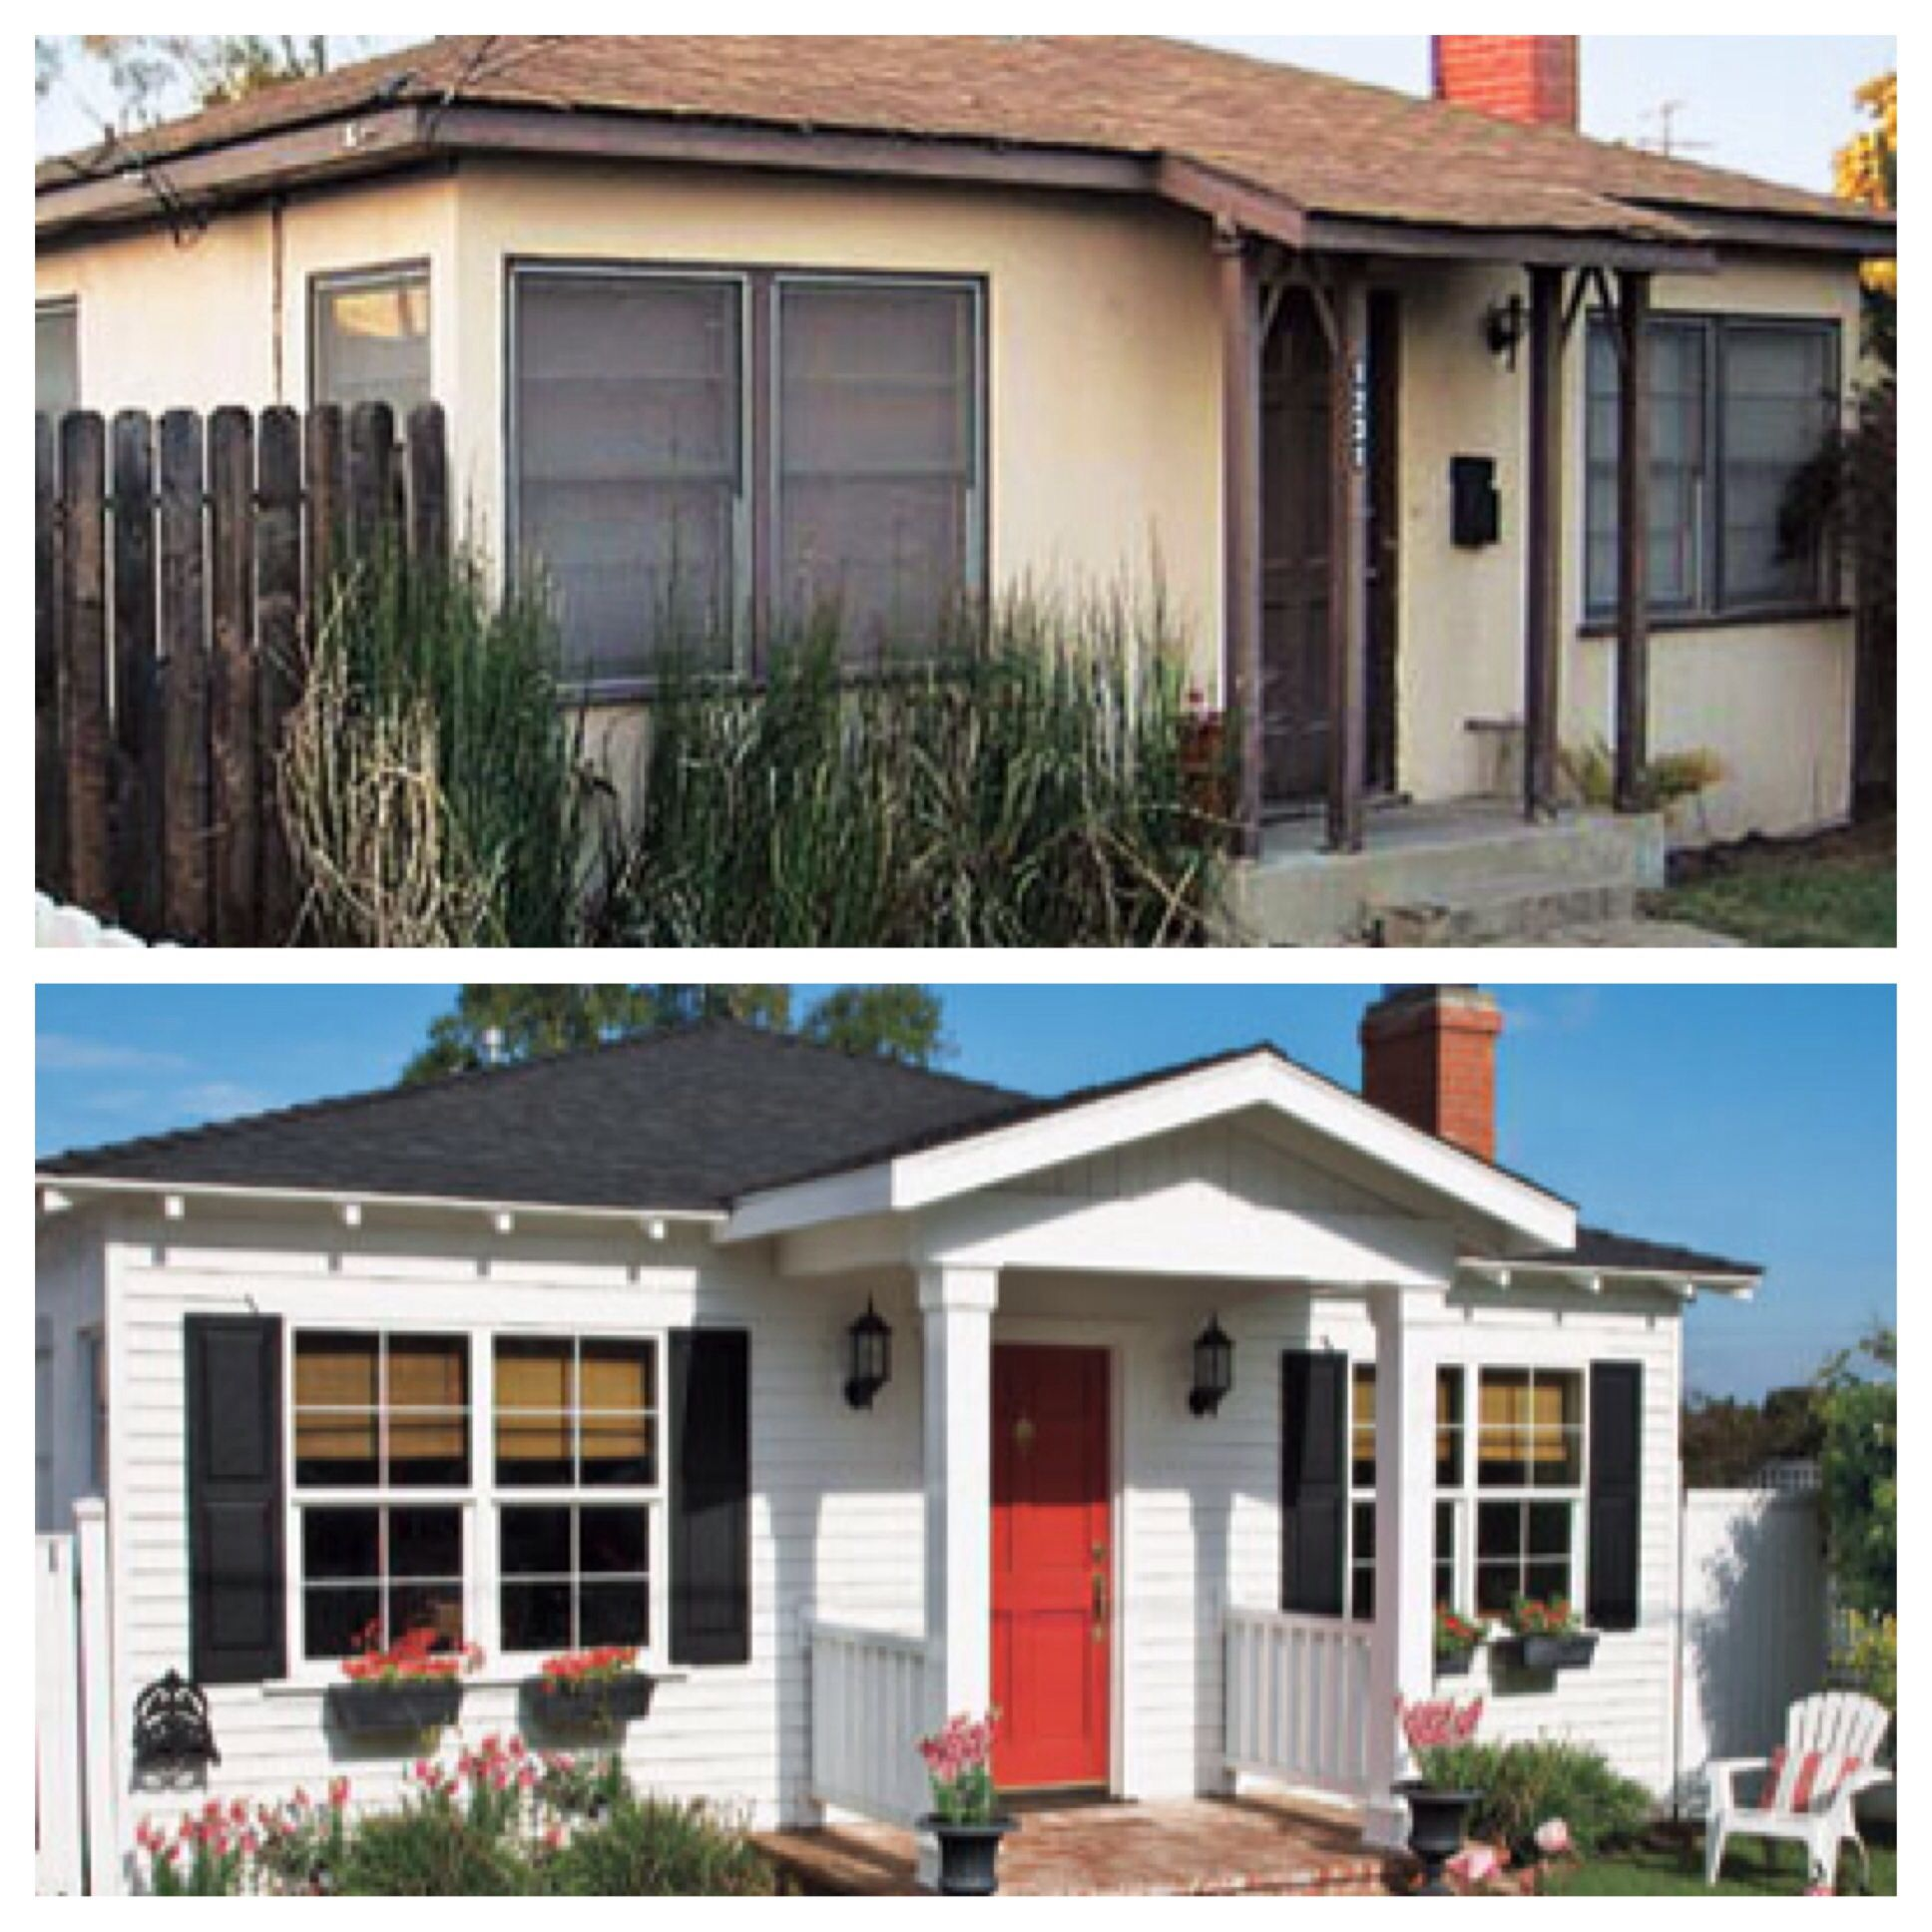 Curb appeal before and after. Add dimension and character.